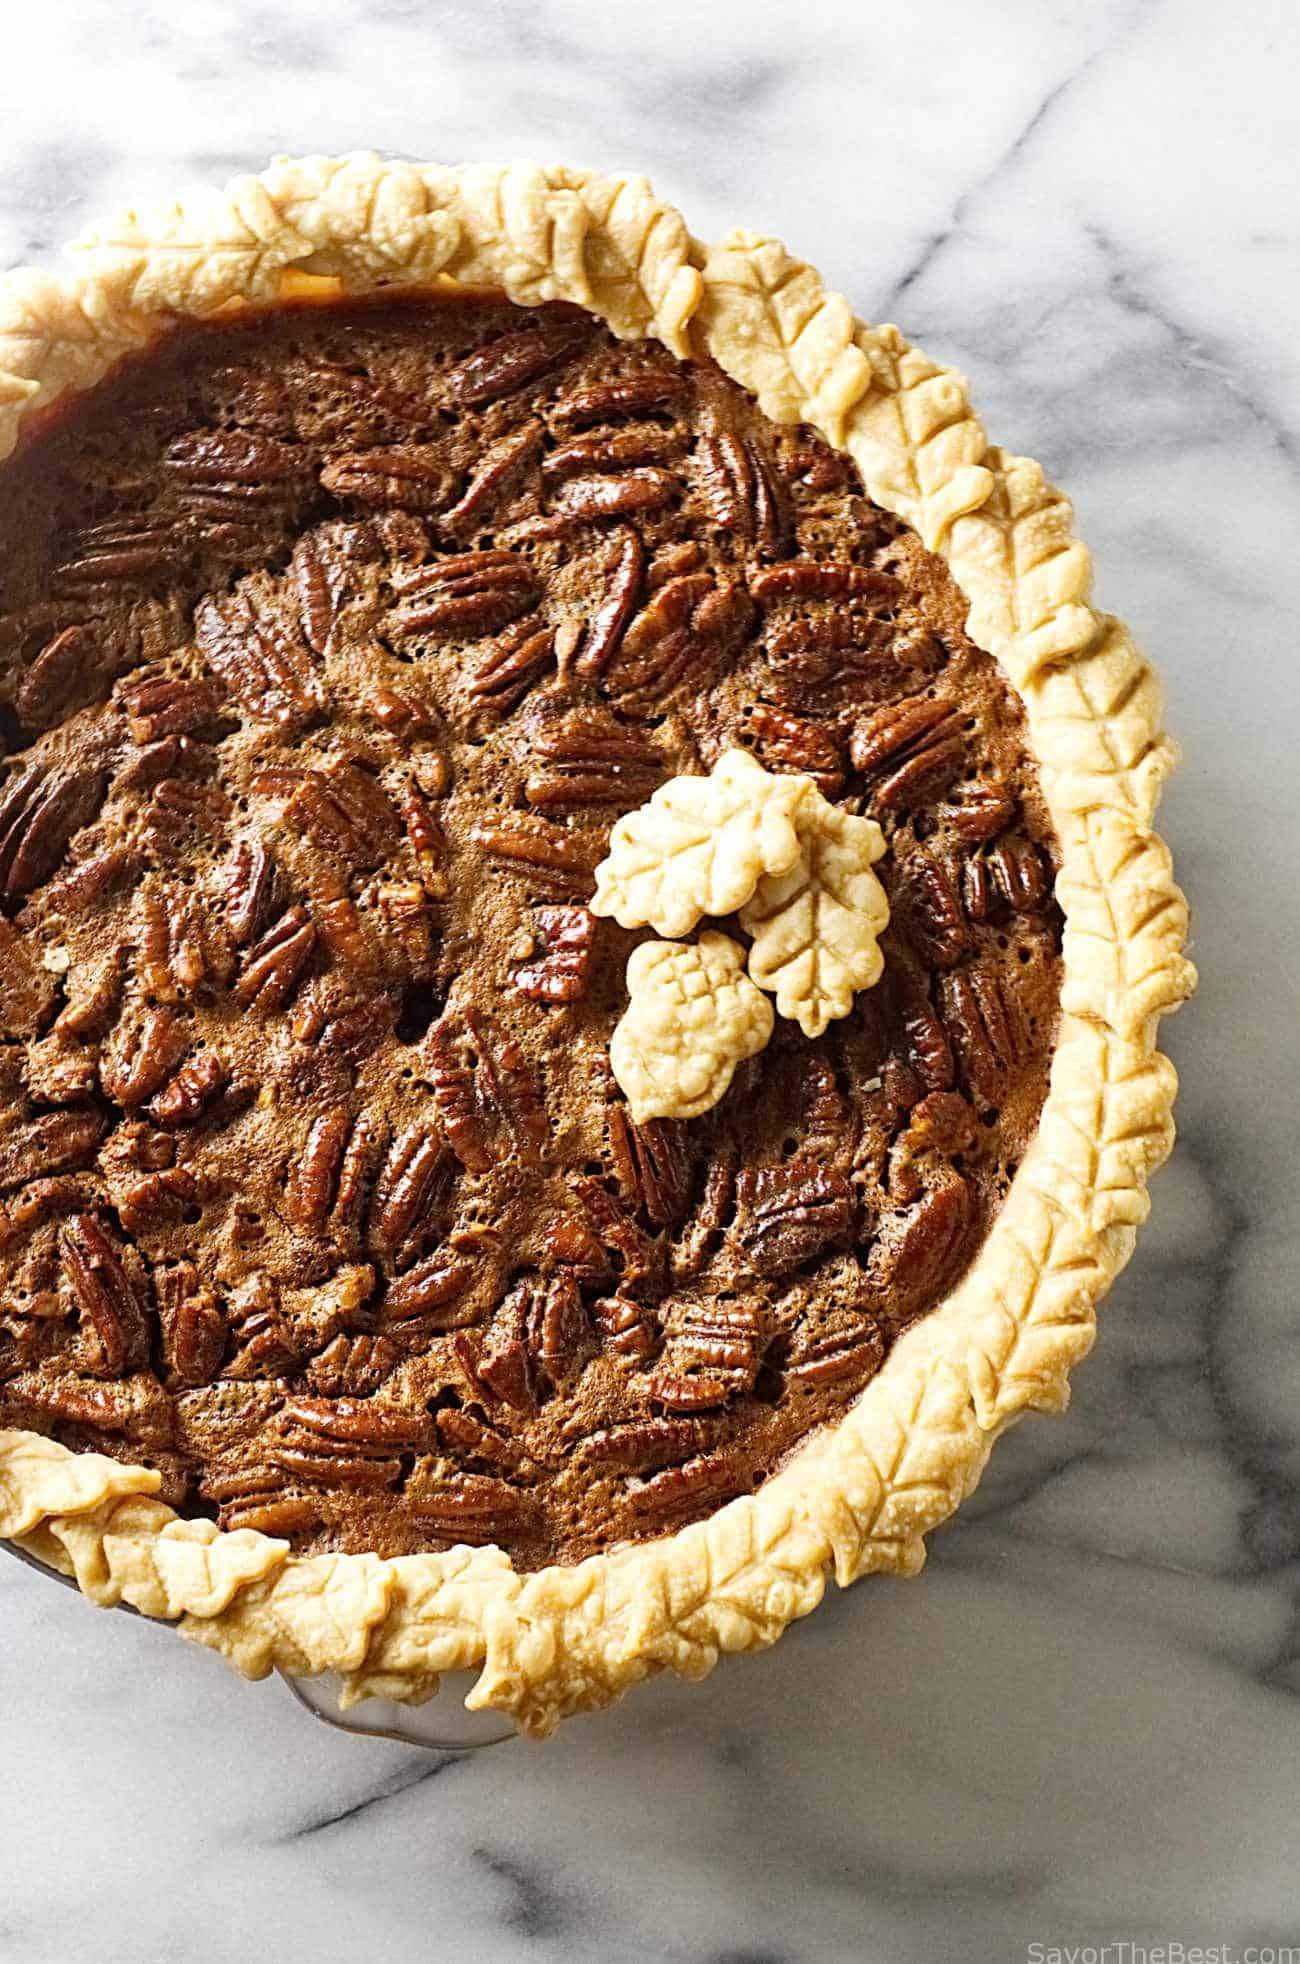 Chocolate Pecan Pie - Savor the Best